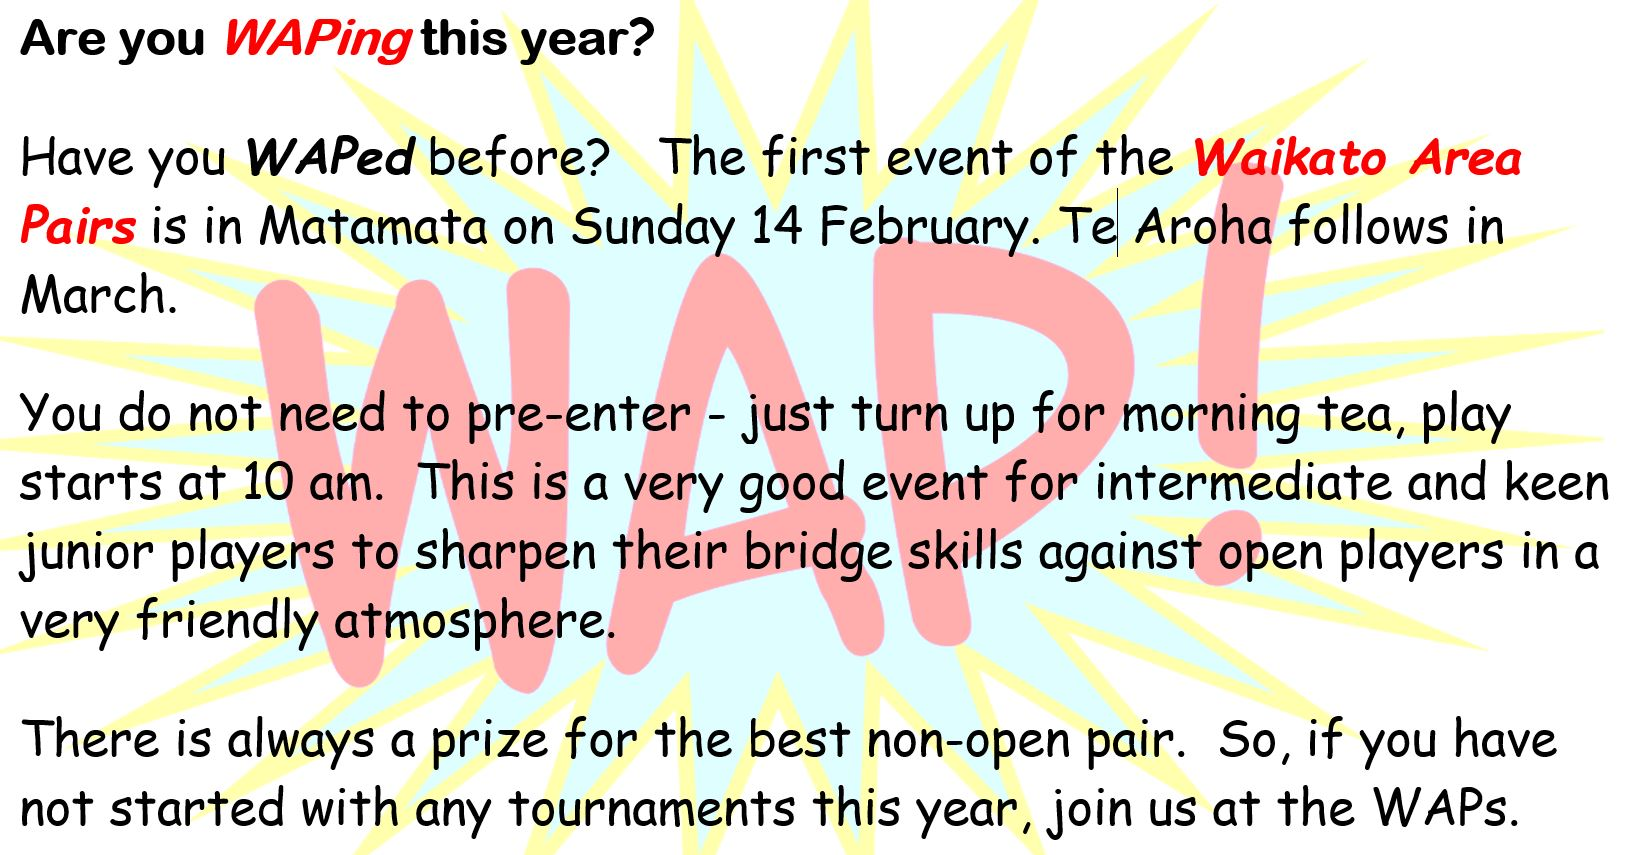 Promo for the 2021 Waikato Area Pairs